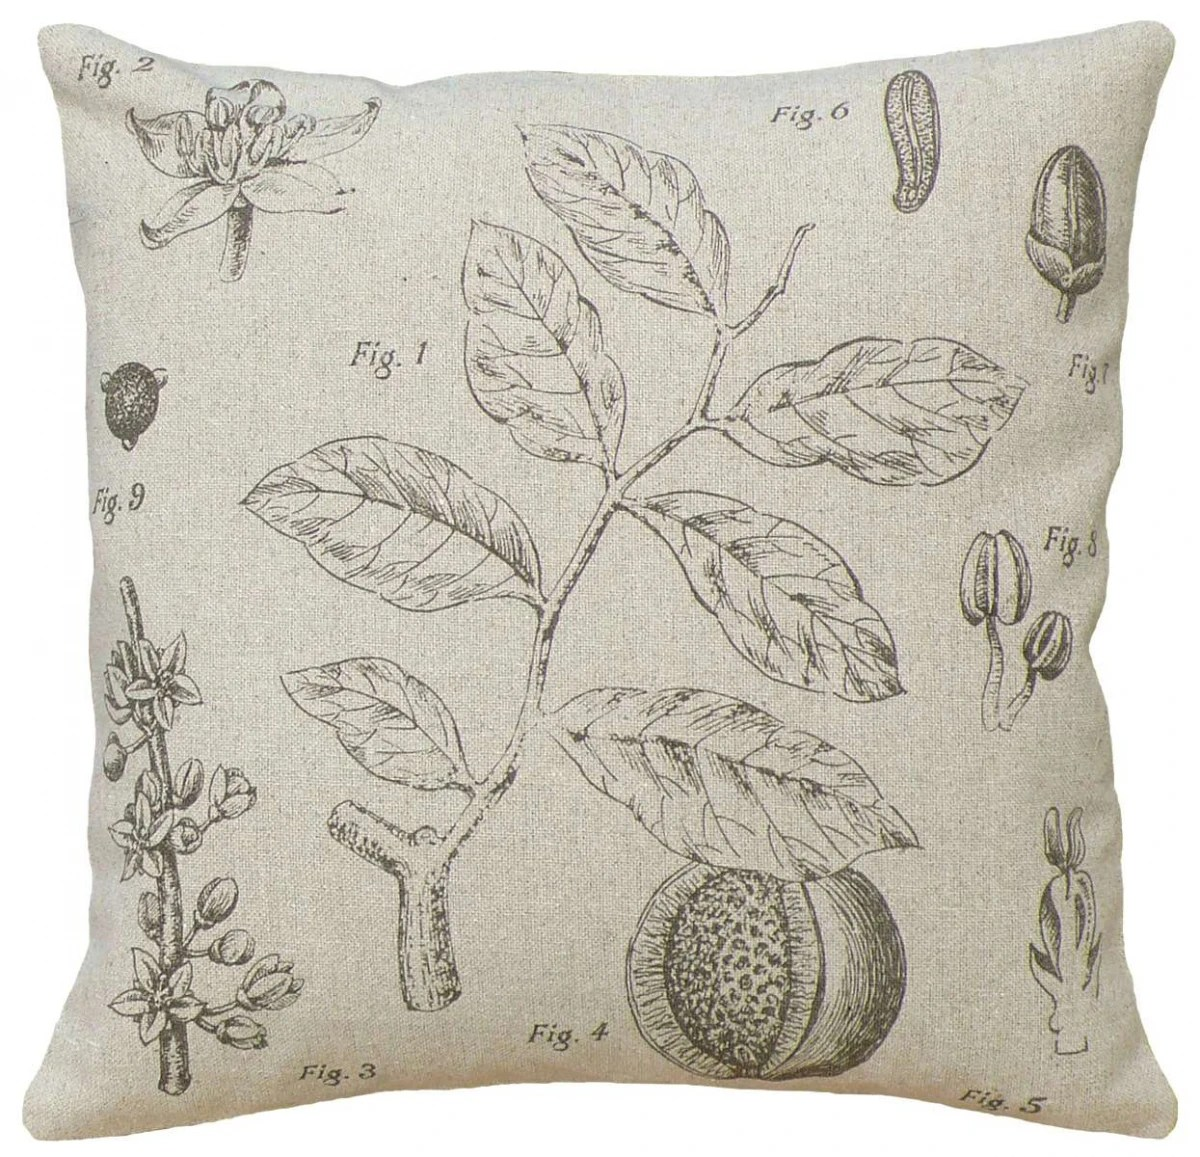 123 Creations Plant Study Linen Pillow with Feather Down